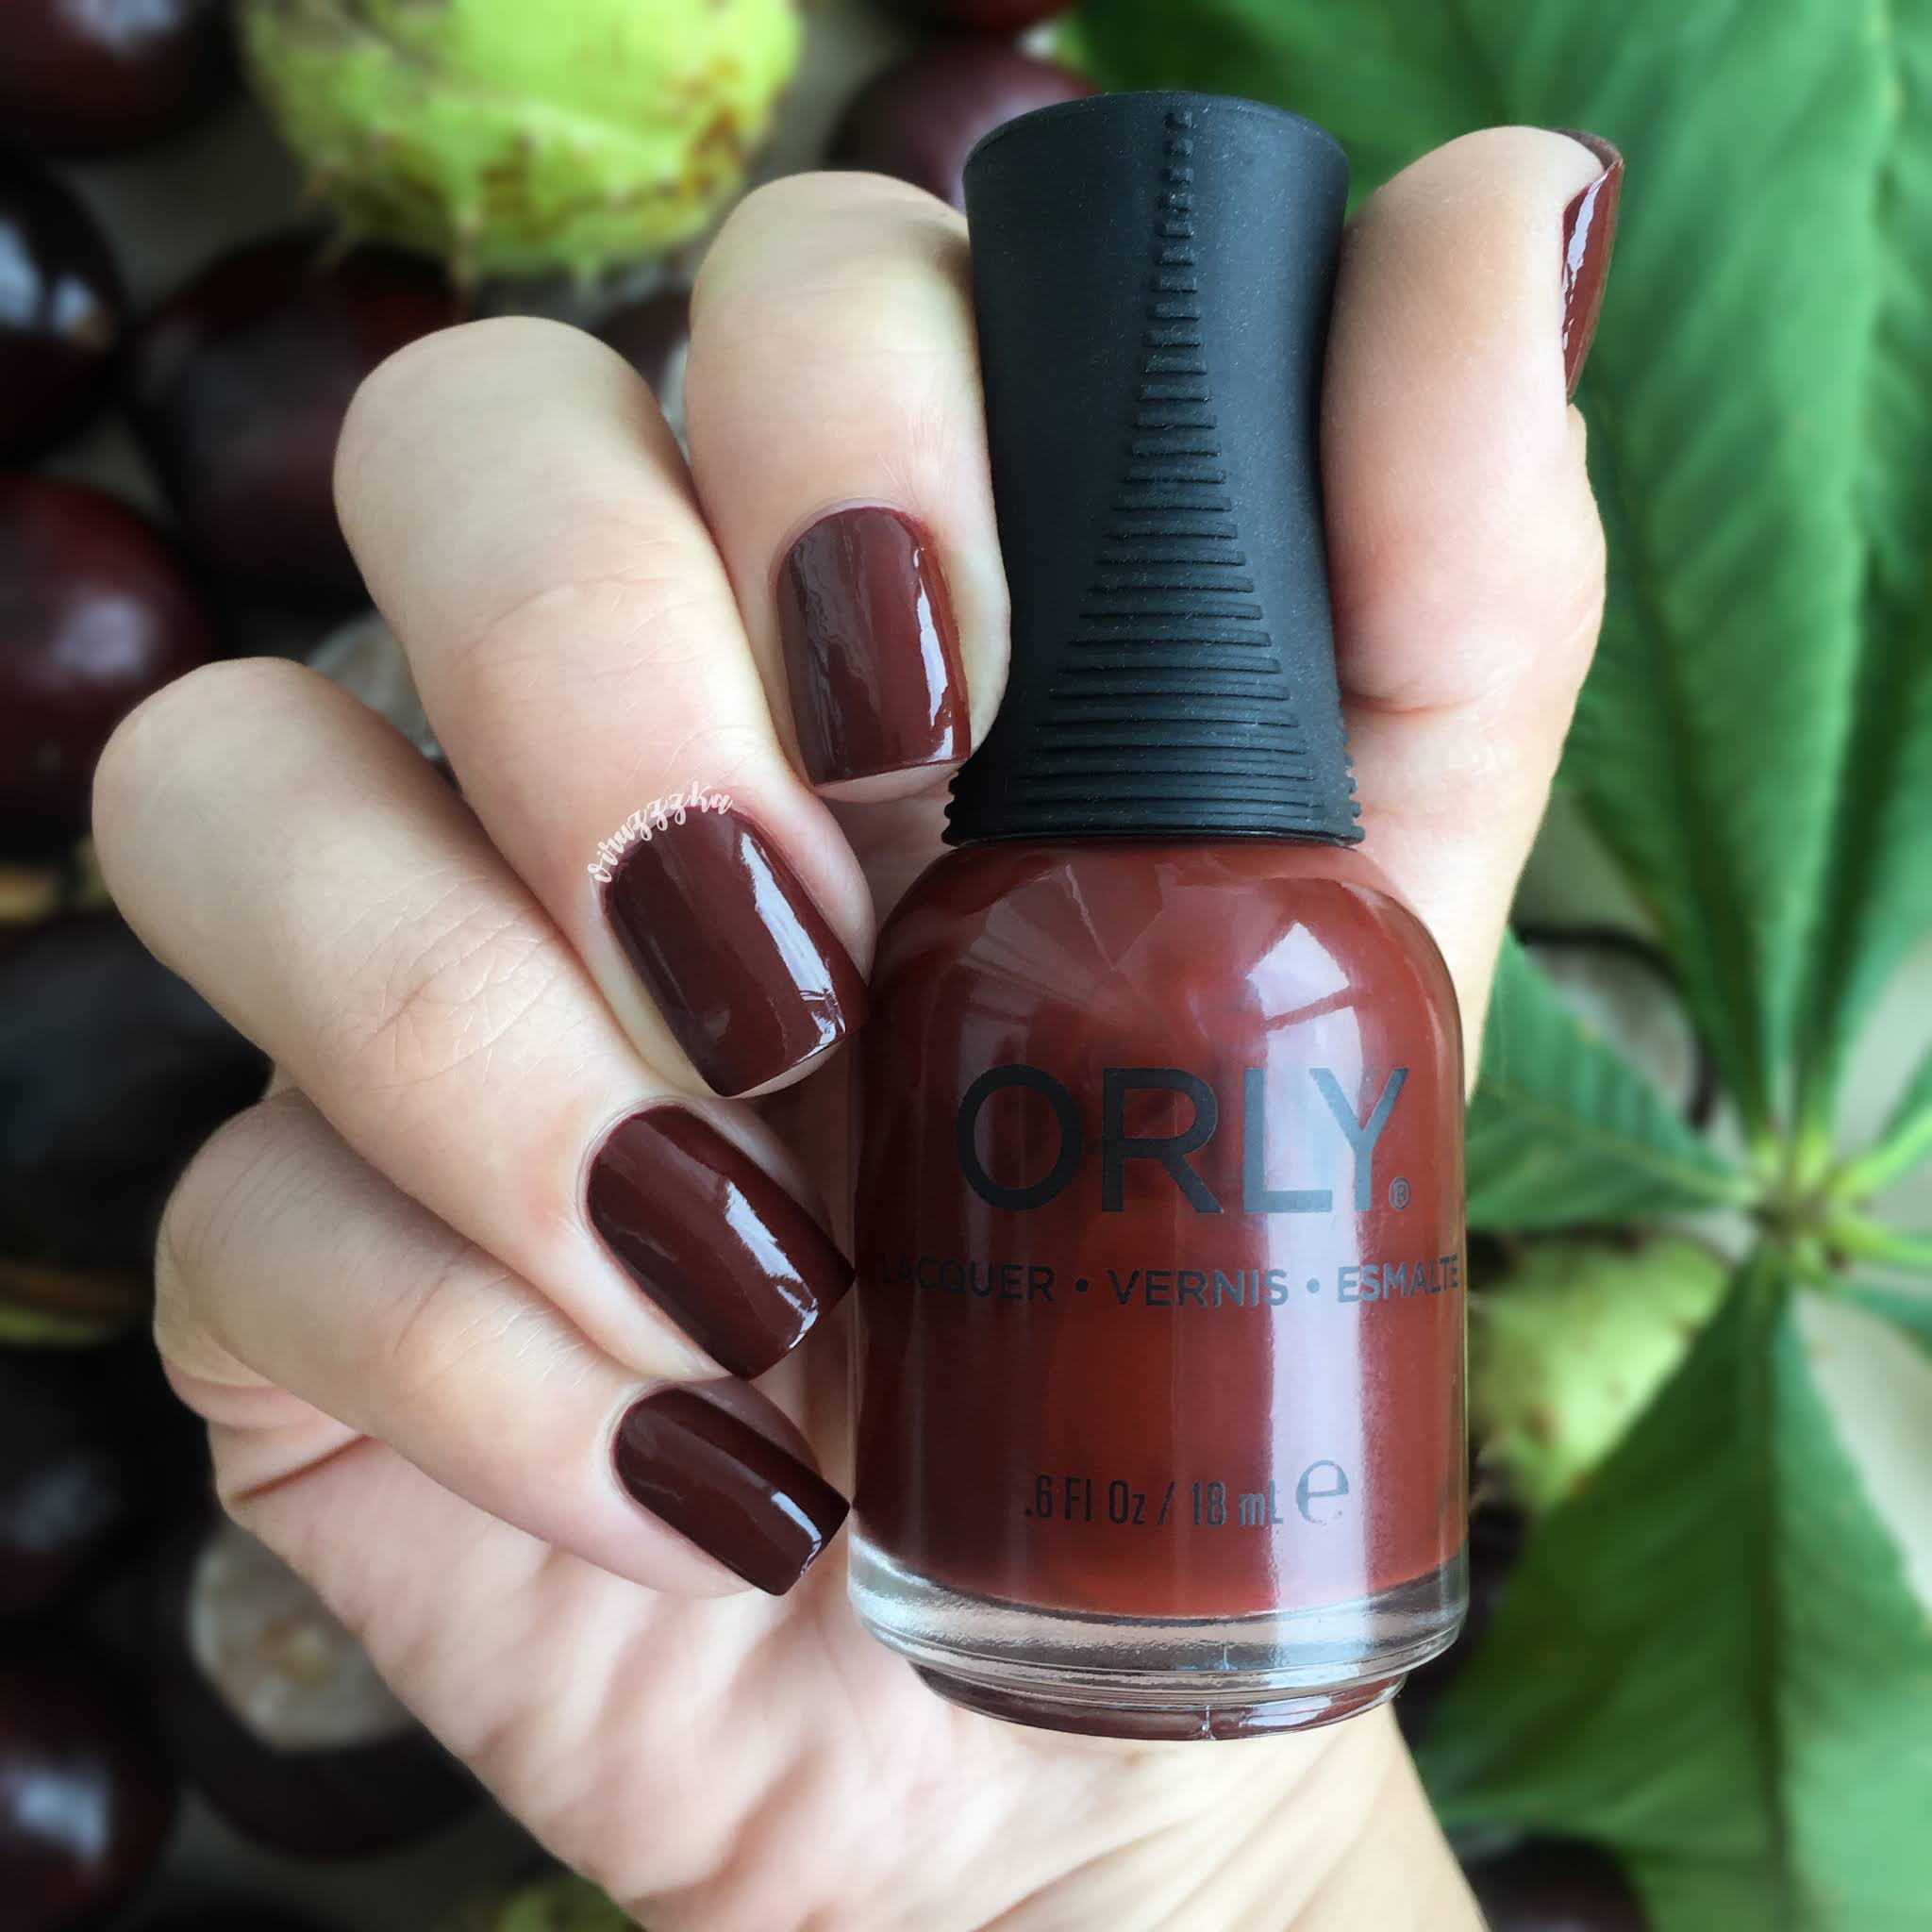 Orly Penny Leather Swatch Autumn Brown Nails Fall Autumn Nails